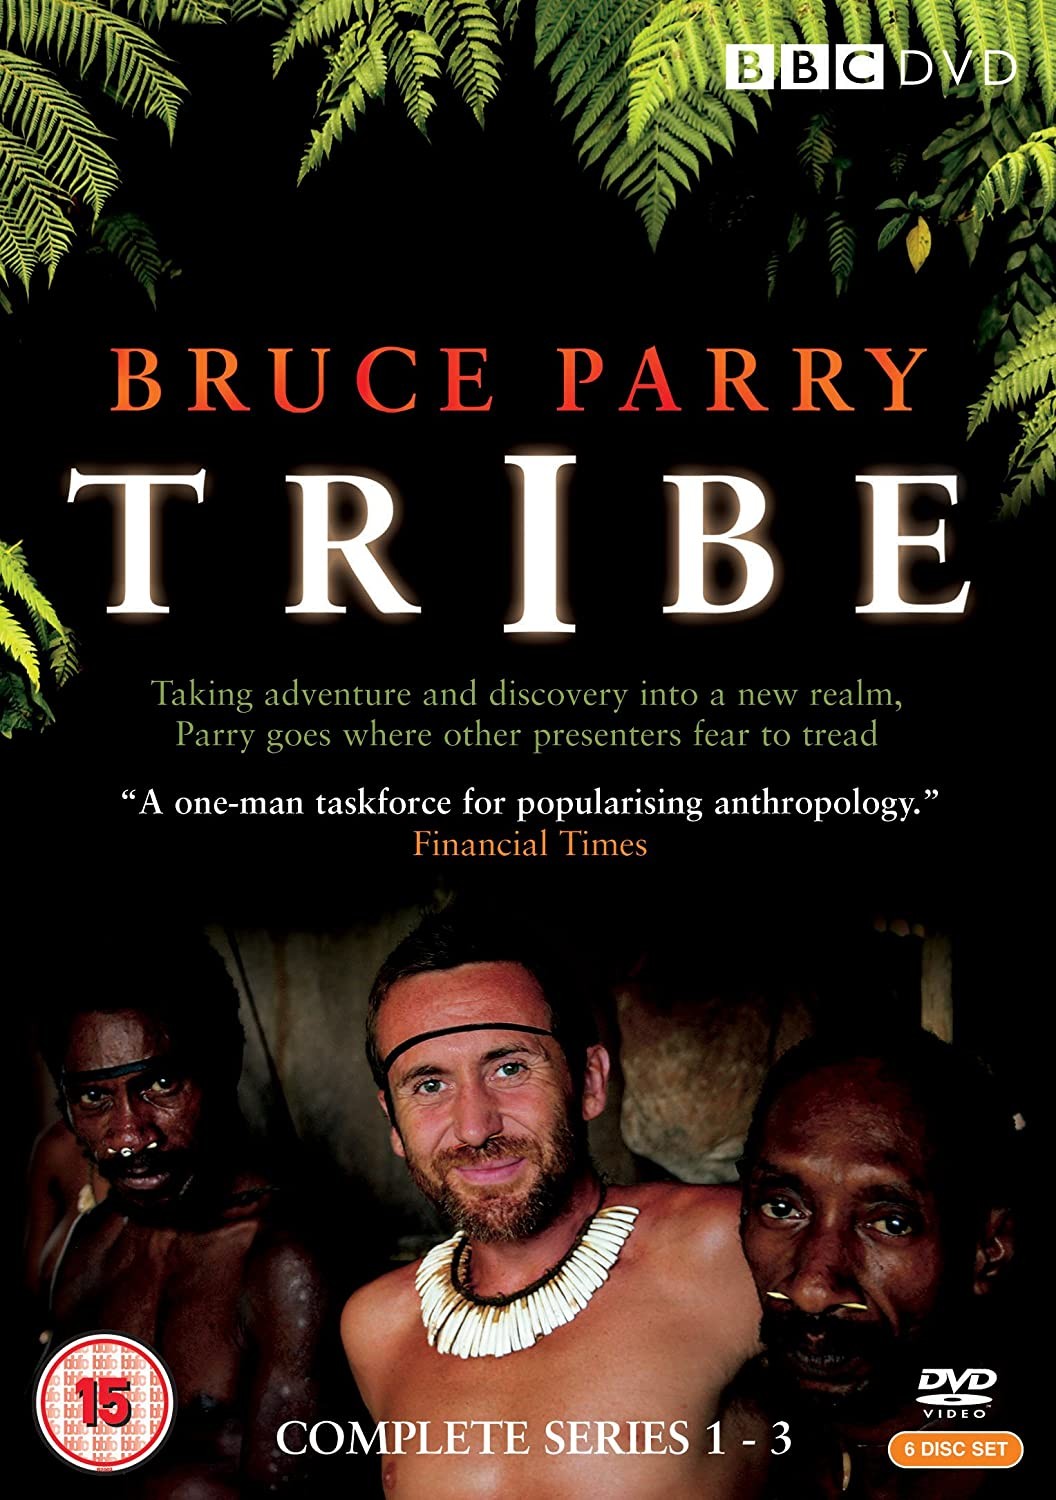 Tribe : Complete BBC Series 1-3 Box Set DVD 2005: Amazon.co.uk: Bruce Parry: DVD & Blu-ray